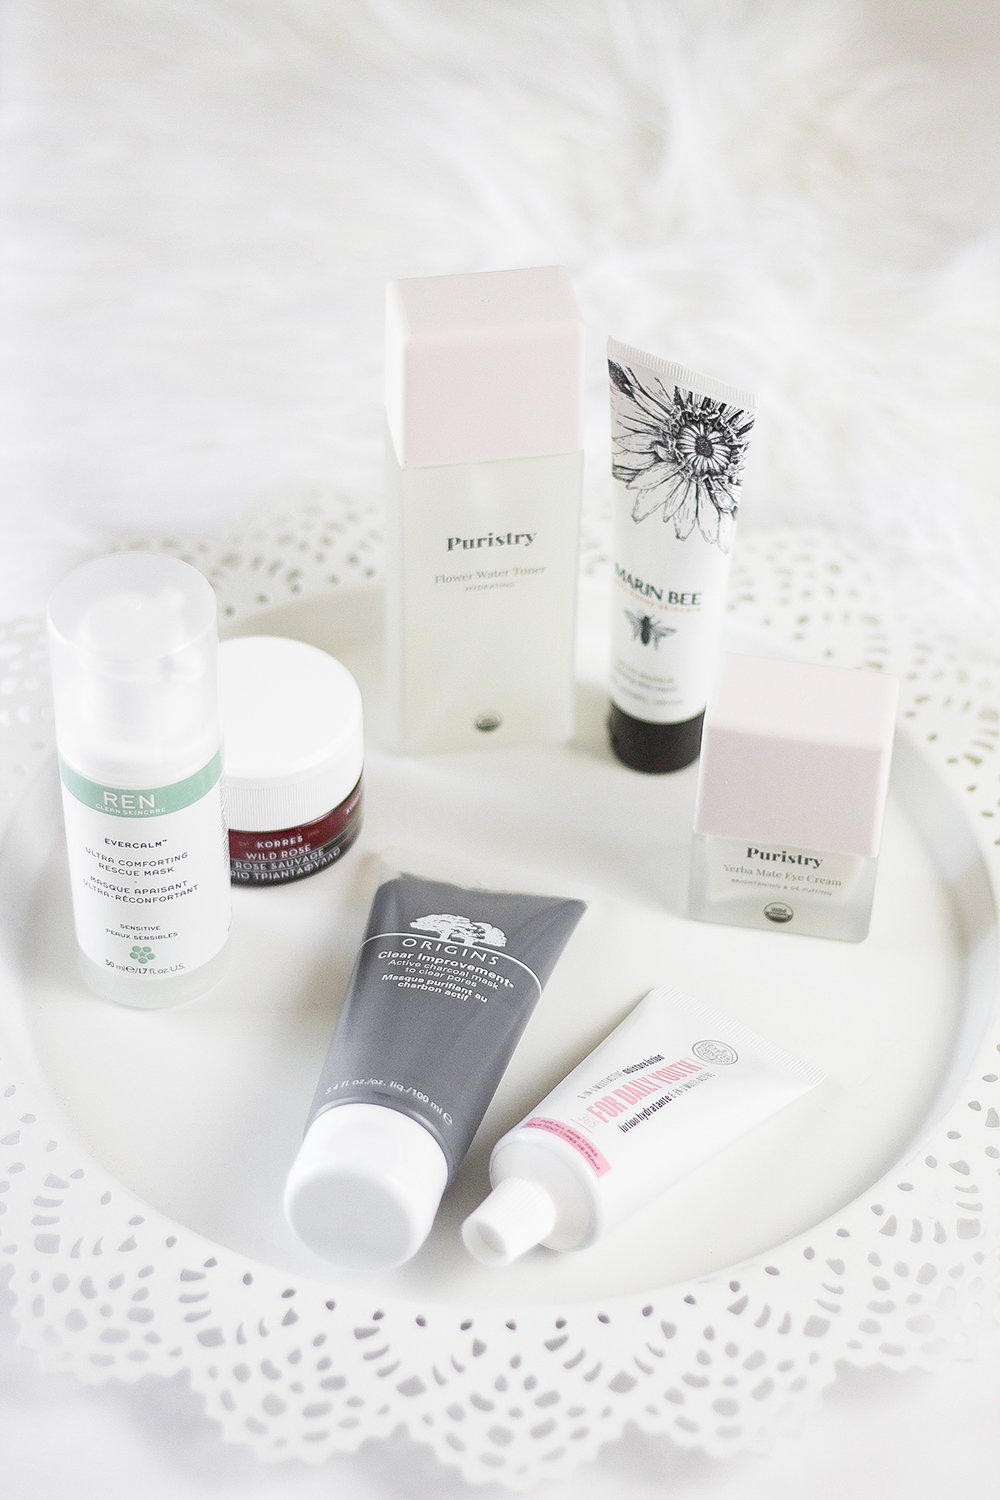 New Skincare On Trial | A Girl, Obsessed